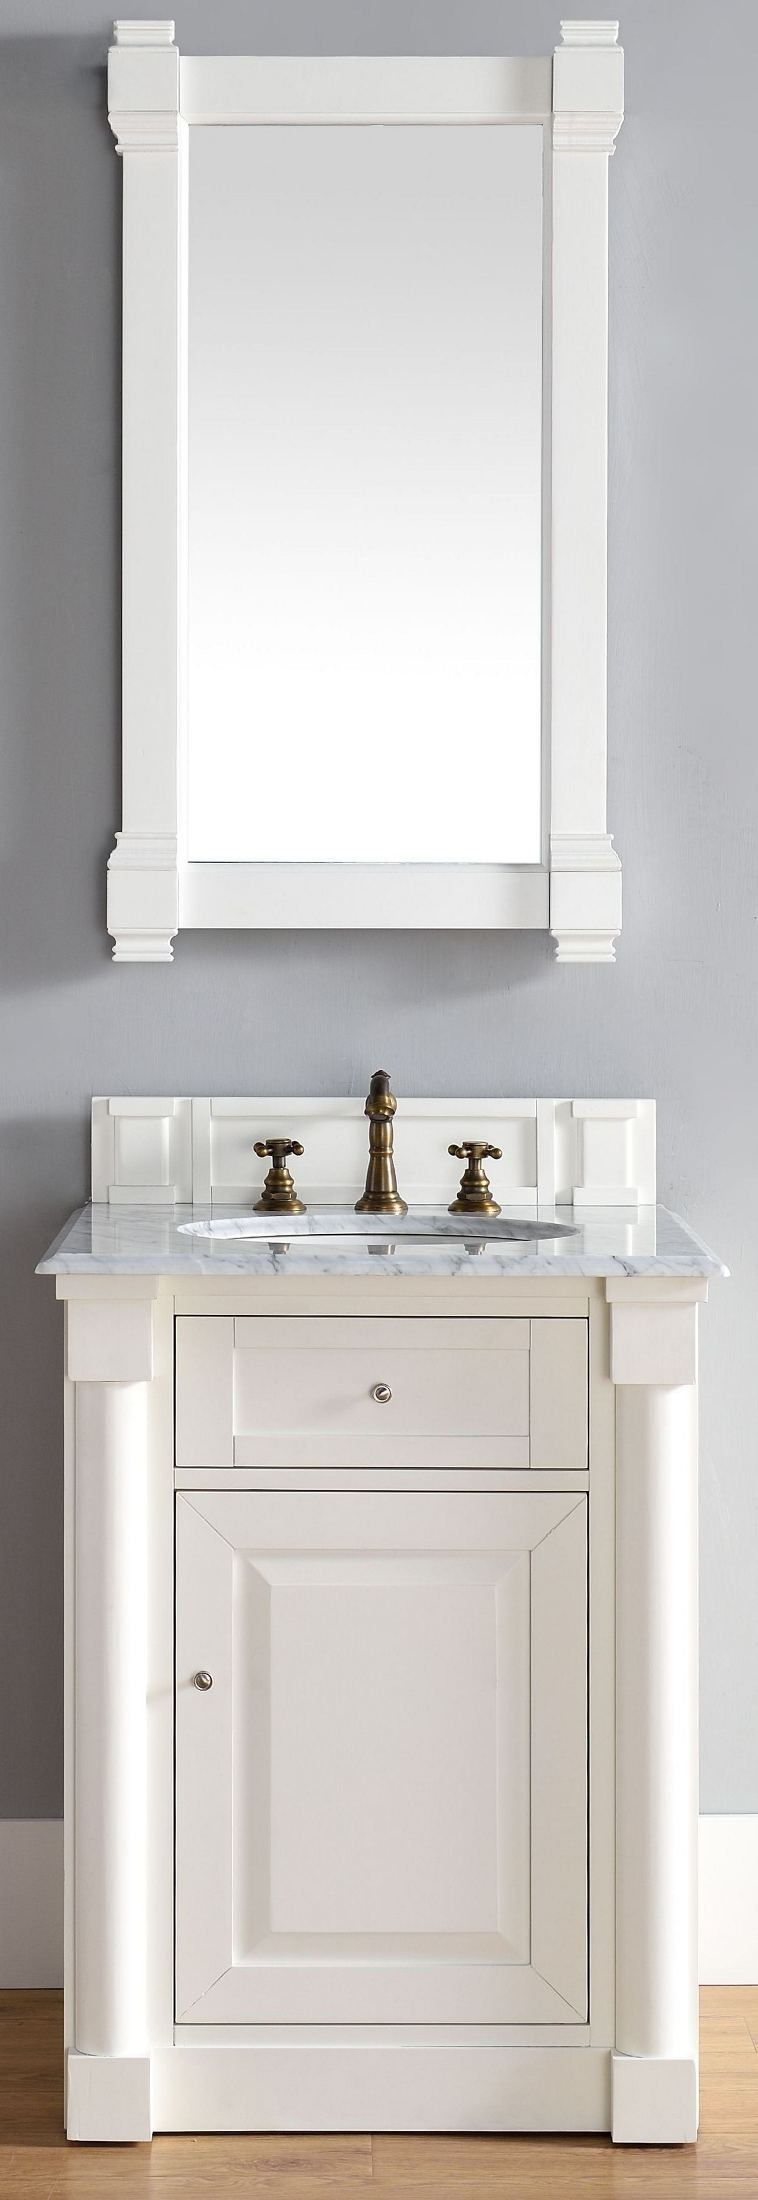 singles in white cottage Cottage bathrooms vanities mostly white, cottage vanities alleviate and improve any bathroom and make the picture-perfect finishing  single sink vanities bathroom.